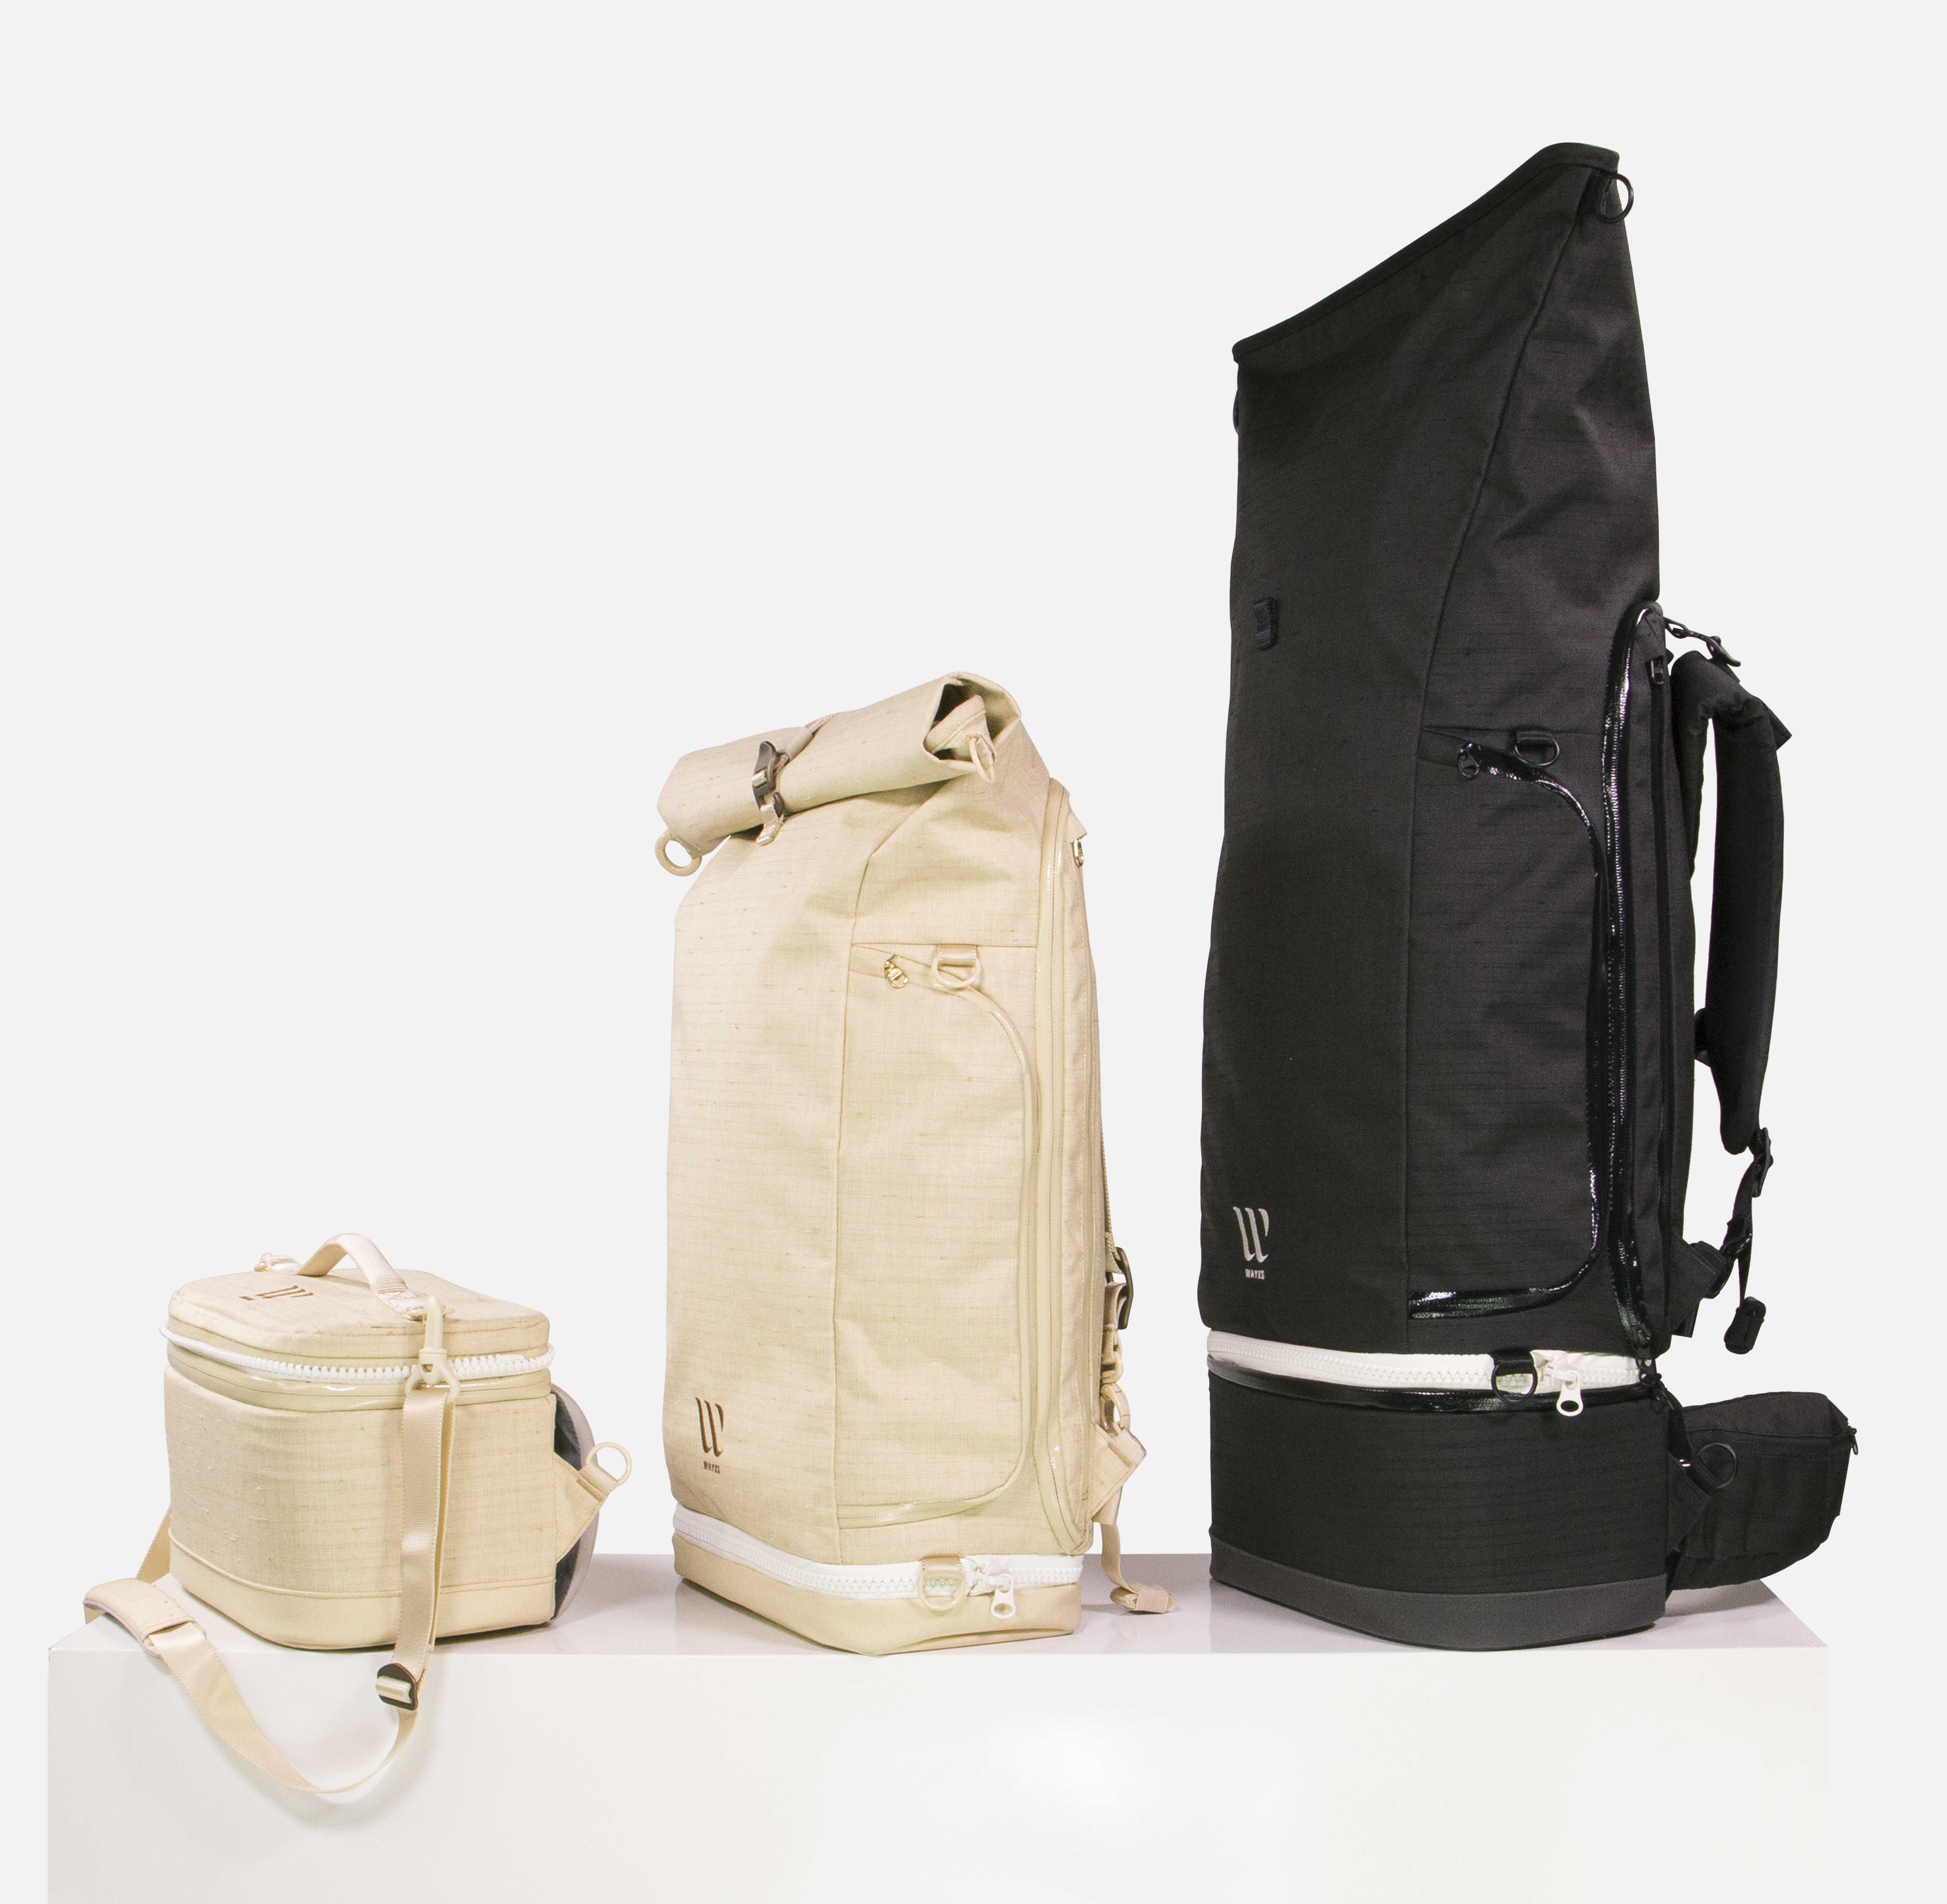 75d120f8175b WAYKS ONE is a modular travel backpack that can be converted into a smaller  day pack and camera bag.